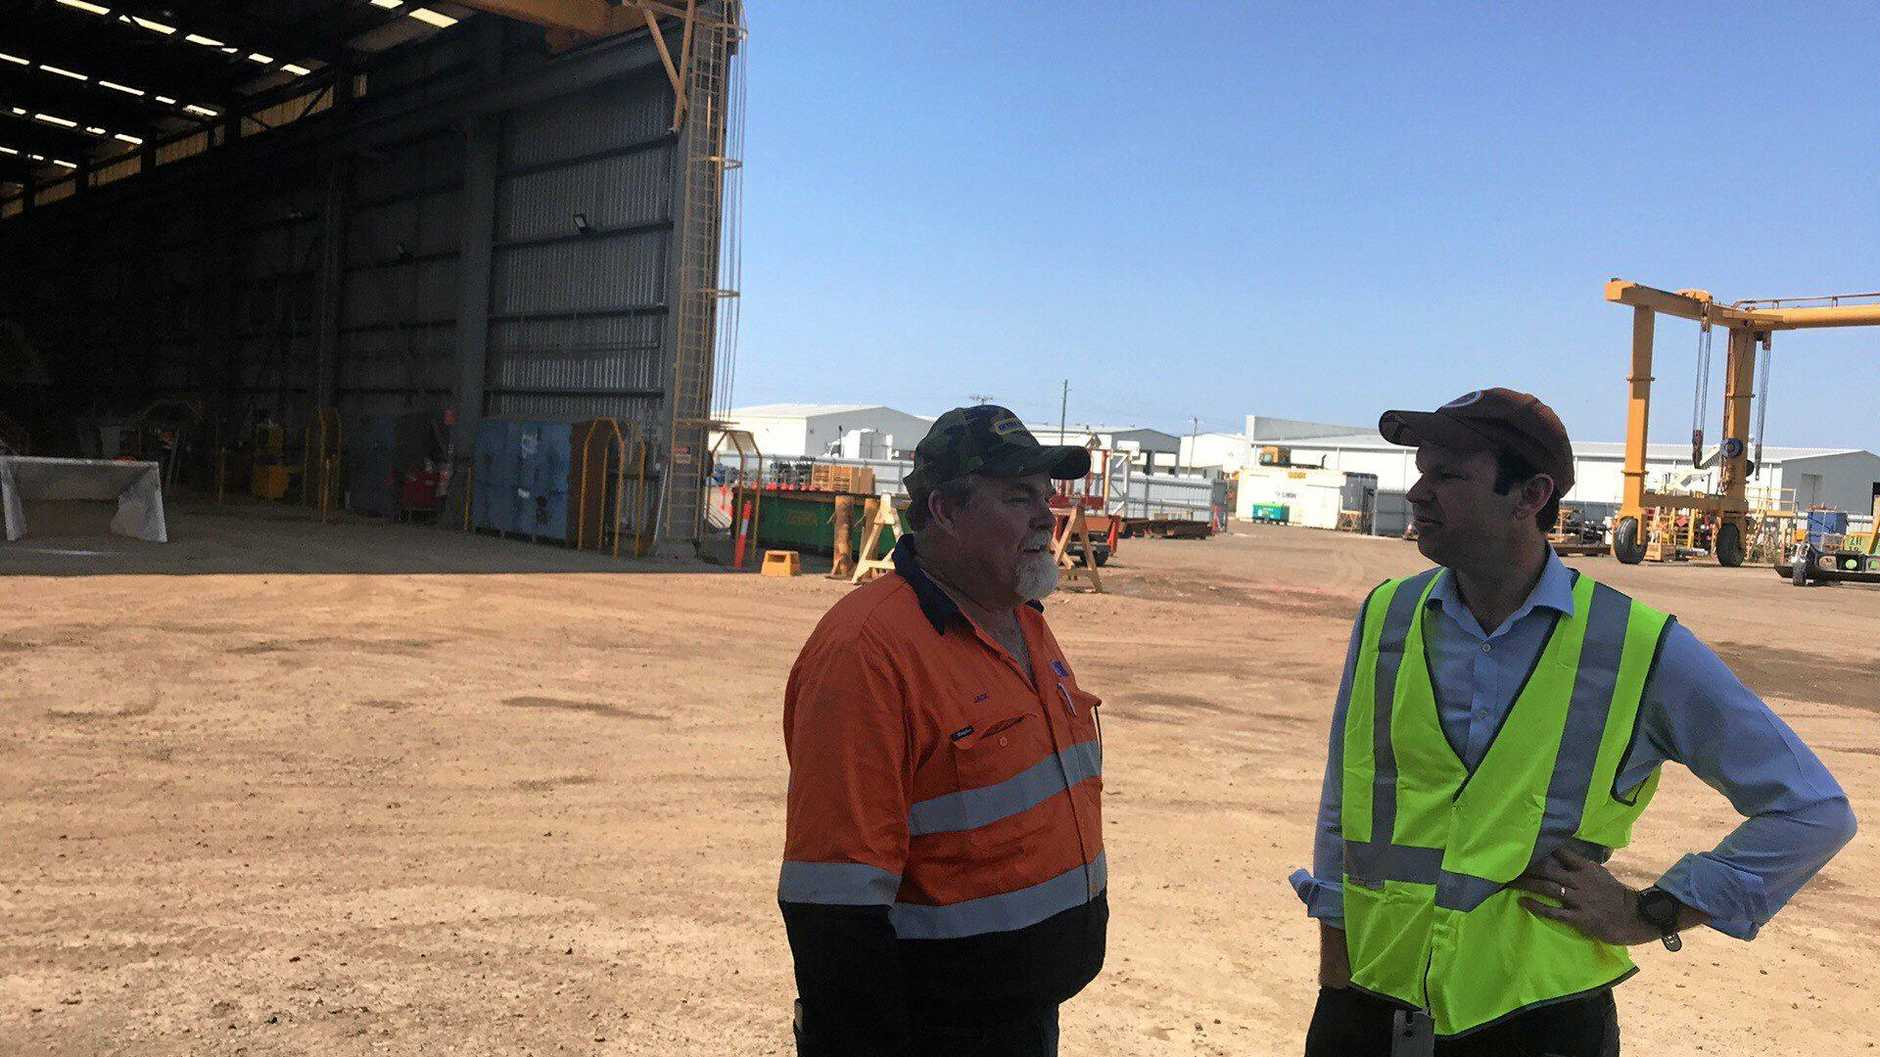 NOT HAPPY: SMW Group director Jack Trenaman and Minister for Resources and Northern Australia Matthew Canavan talk about their disappointment with the results from Adani's Black-Throated Finch Management Plan.